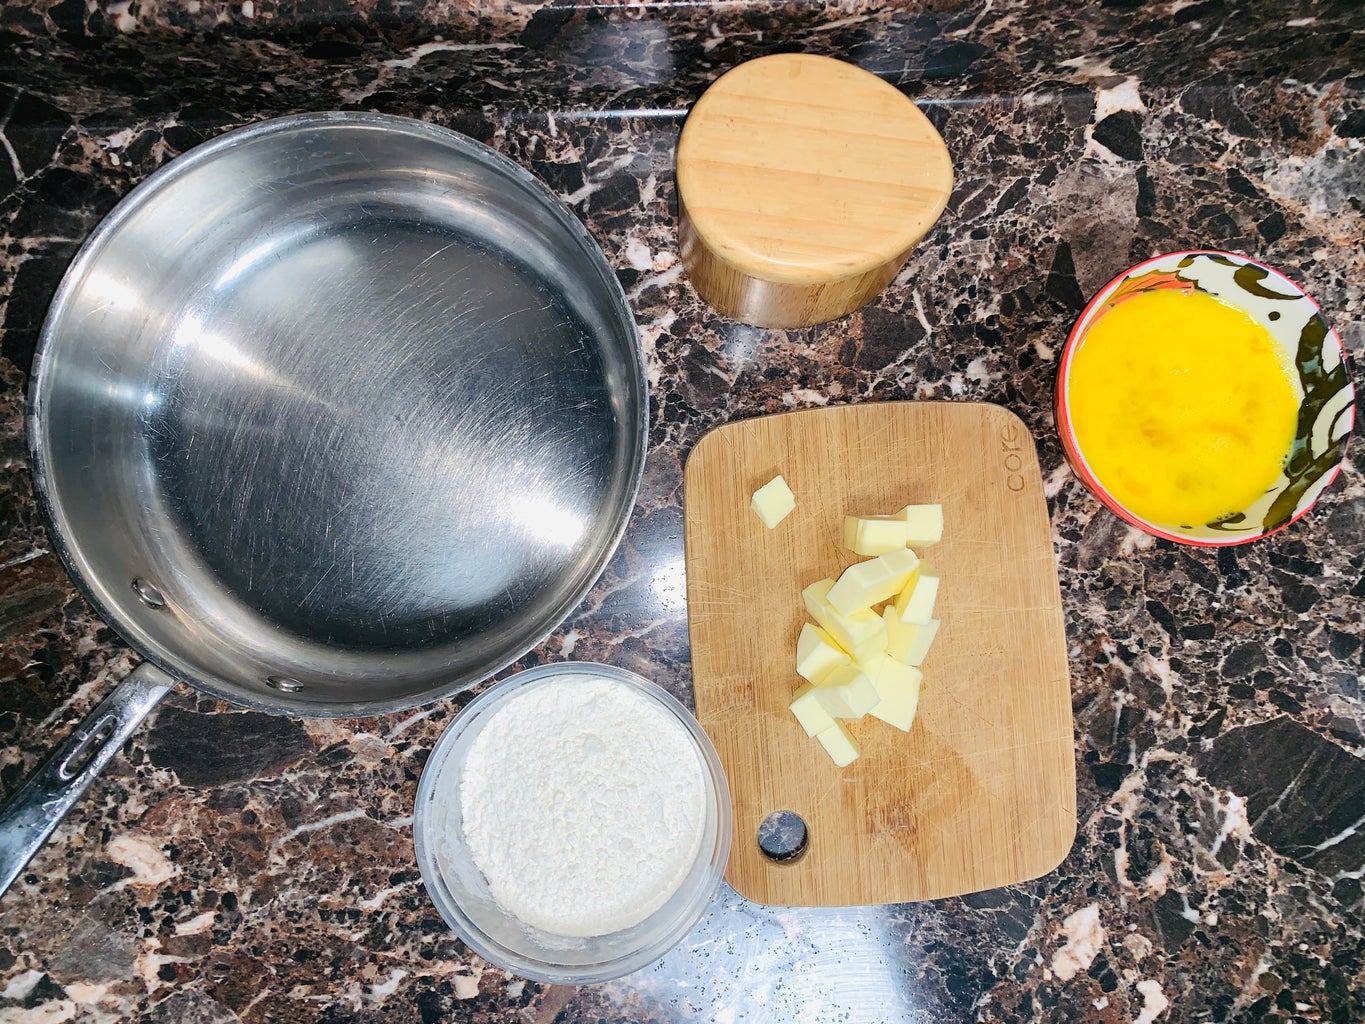 Gather Up Your Ingredients and Equipment